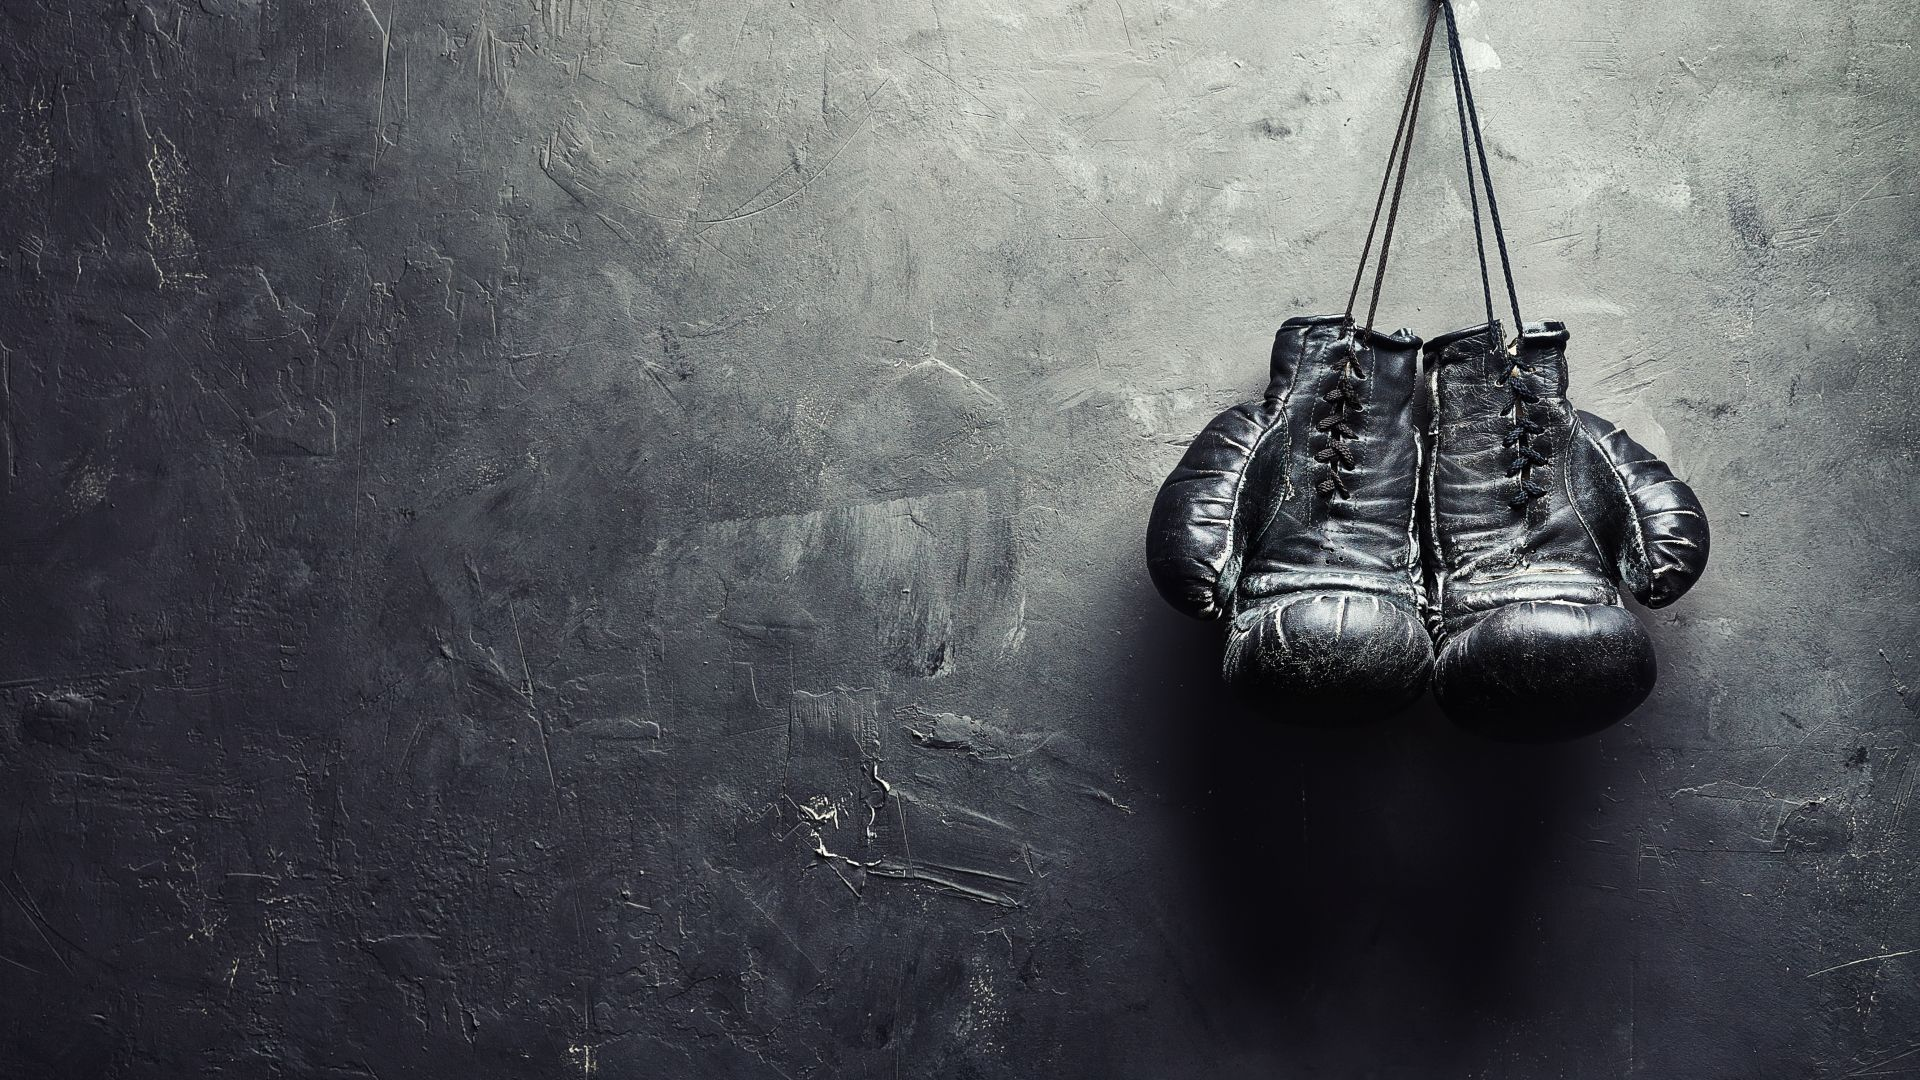 Pin By Kattiesingletary On My Saves In 2021 Boxing Gloves Love Wallpaper Boxing Gloves Images